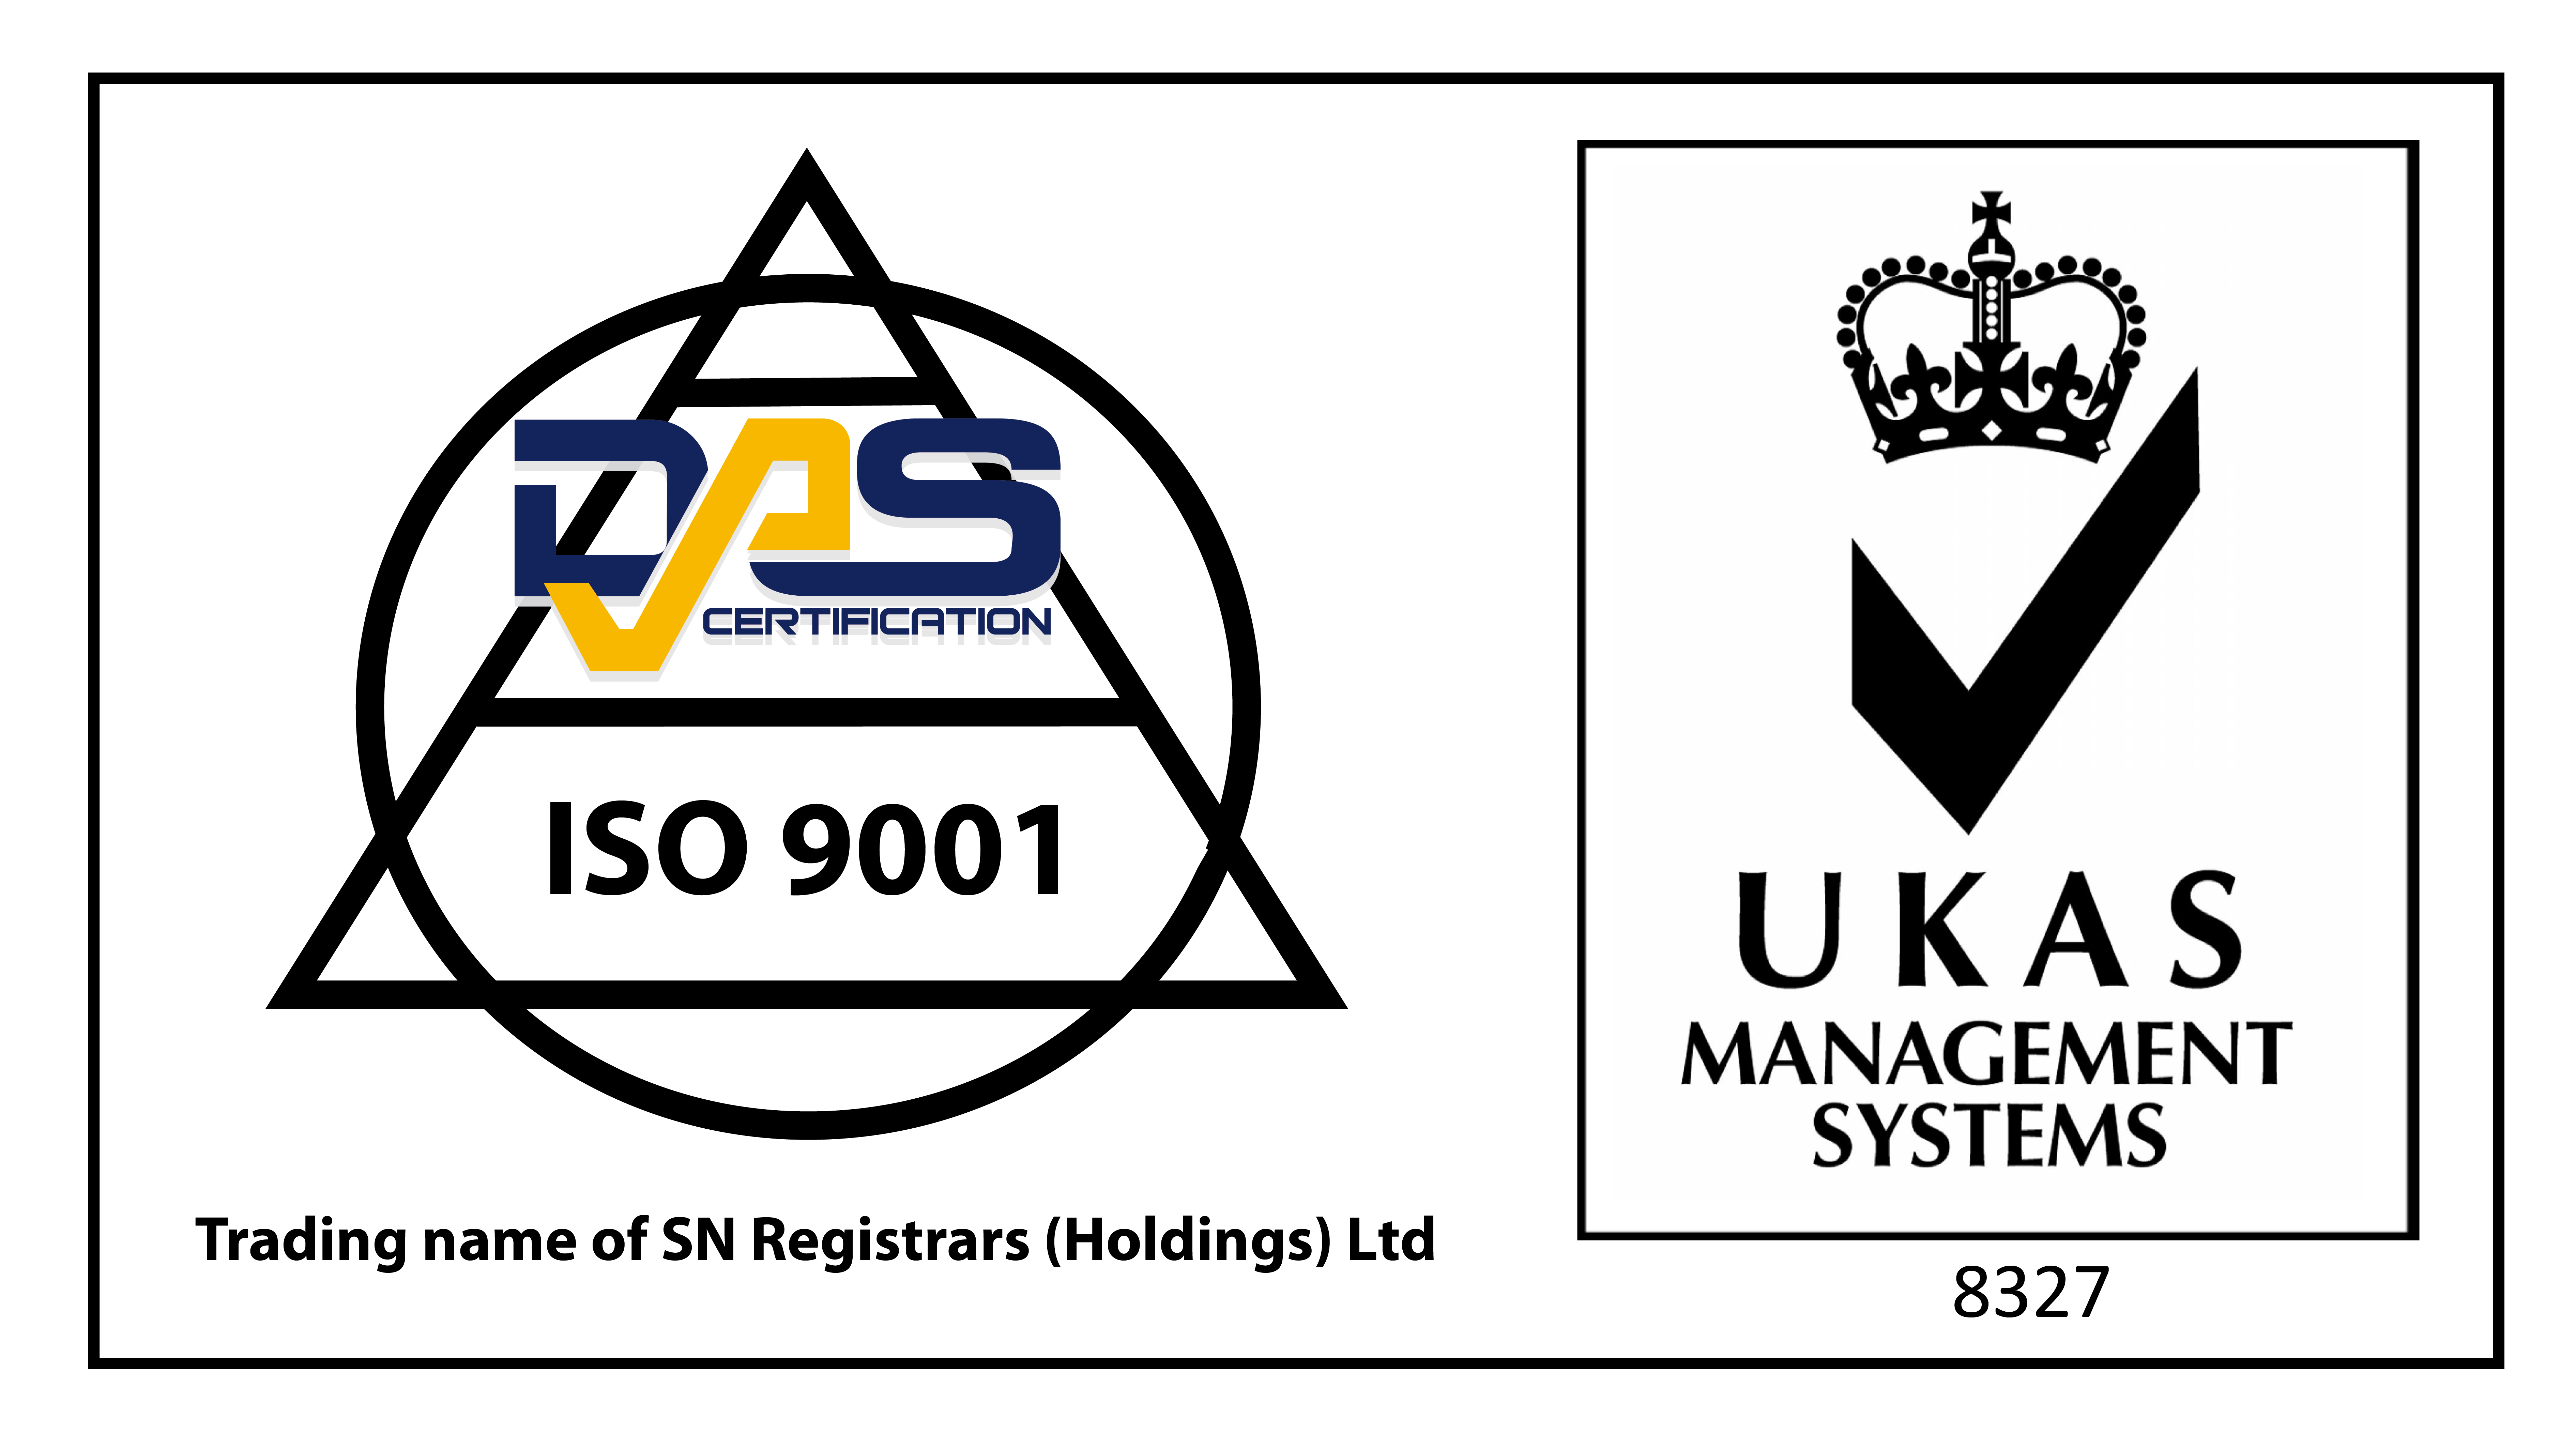 Amita ISO 9001 accreditation